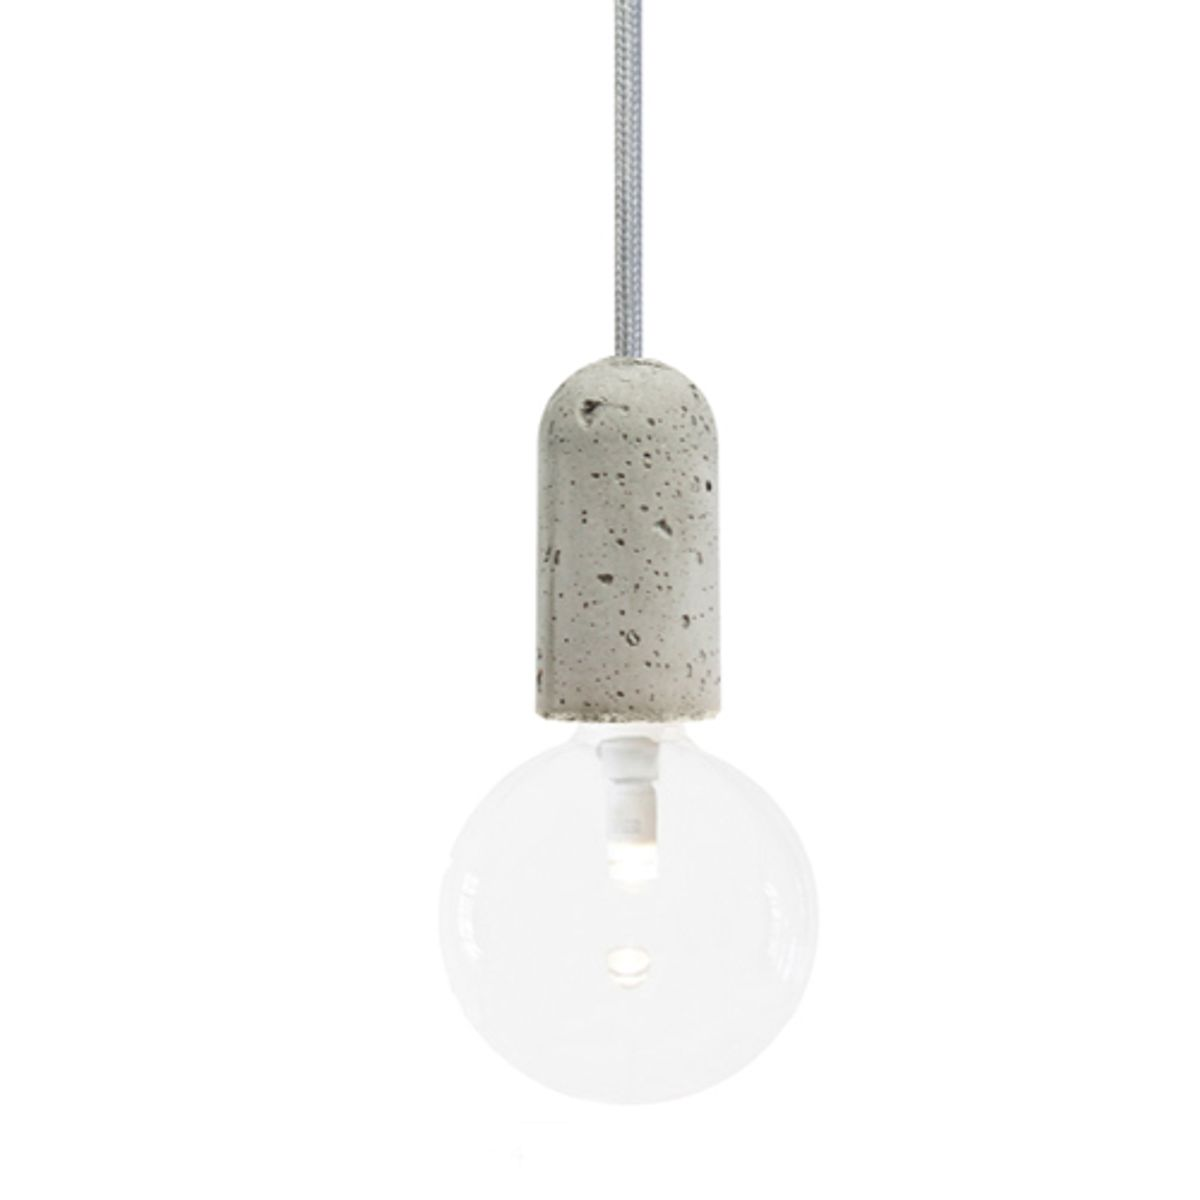 Suspension douille en béton Base Nud Collection - fil gris argenté